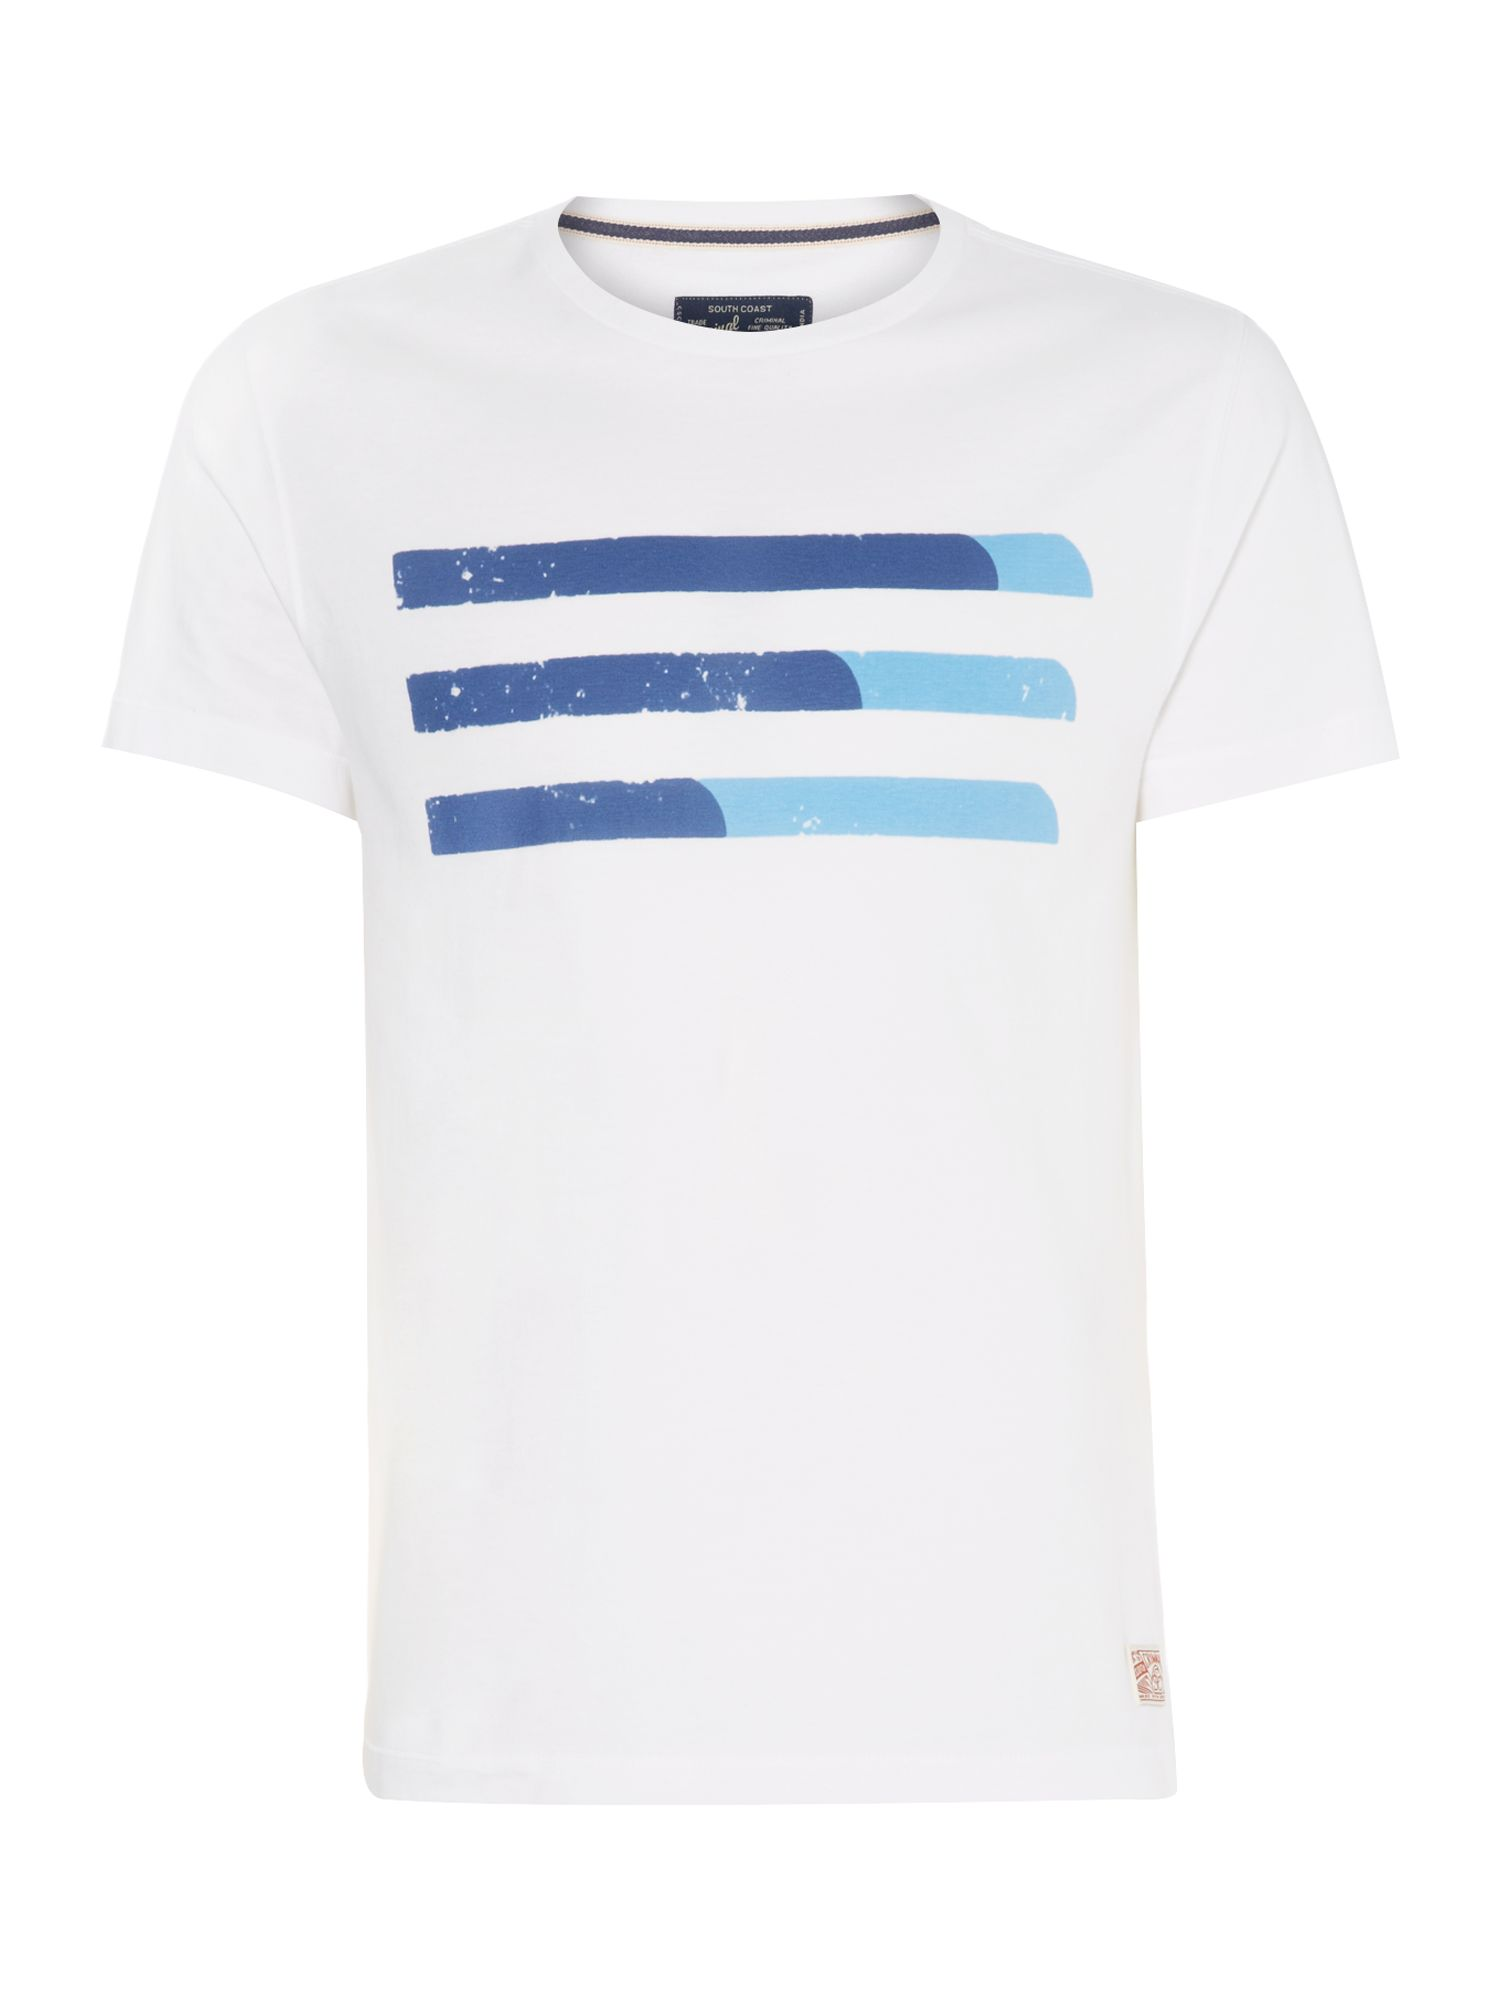 Waves graphic tee